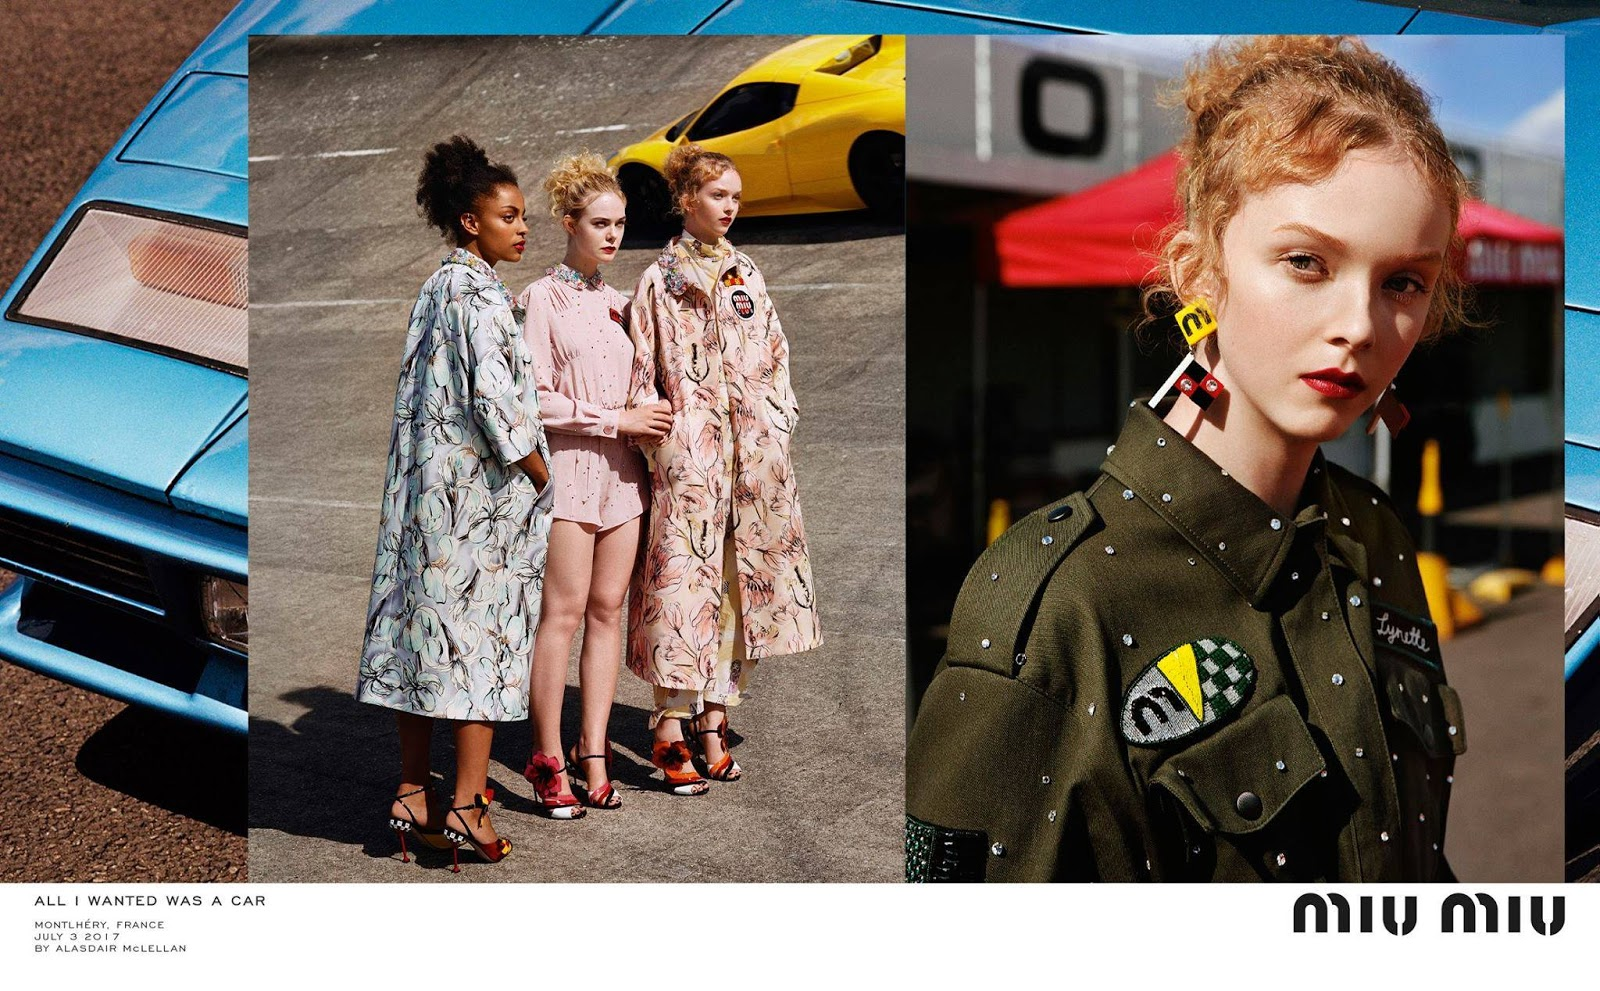 Miu Miu All I wanted was a car… Croisiere 2018 Ads Campaign